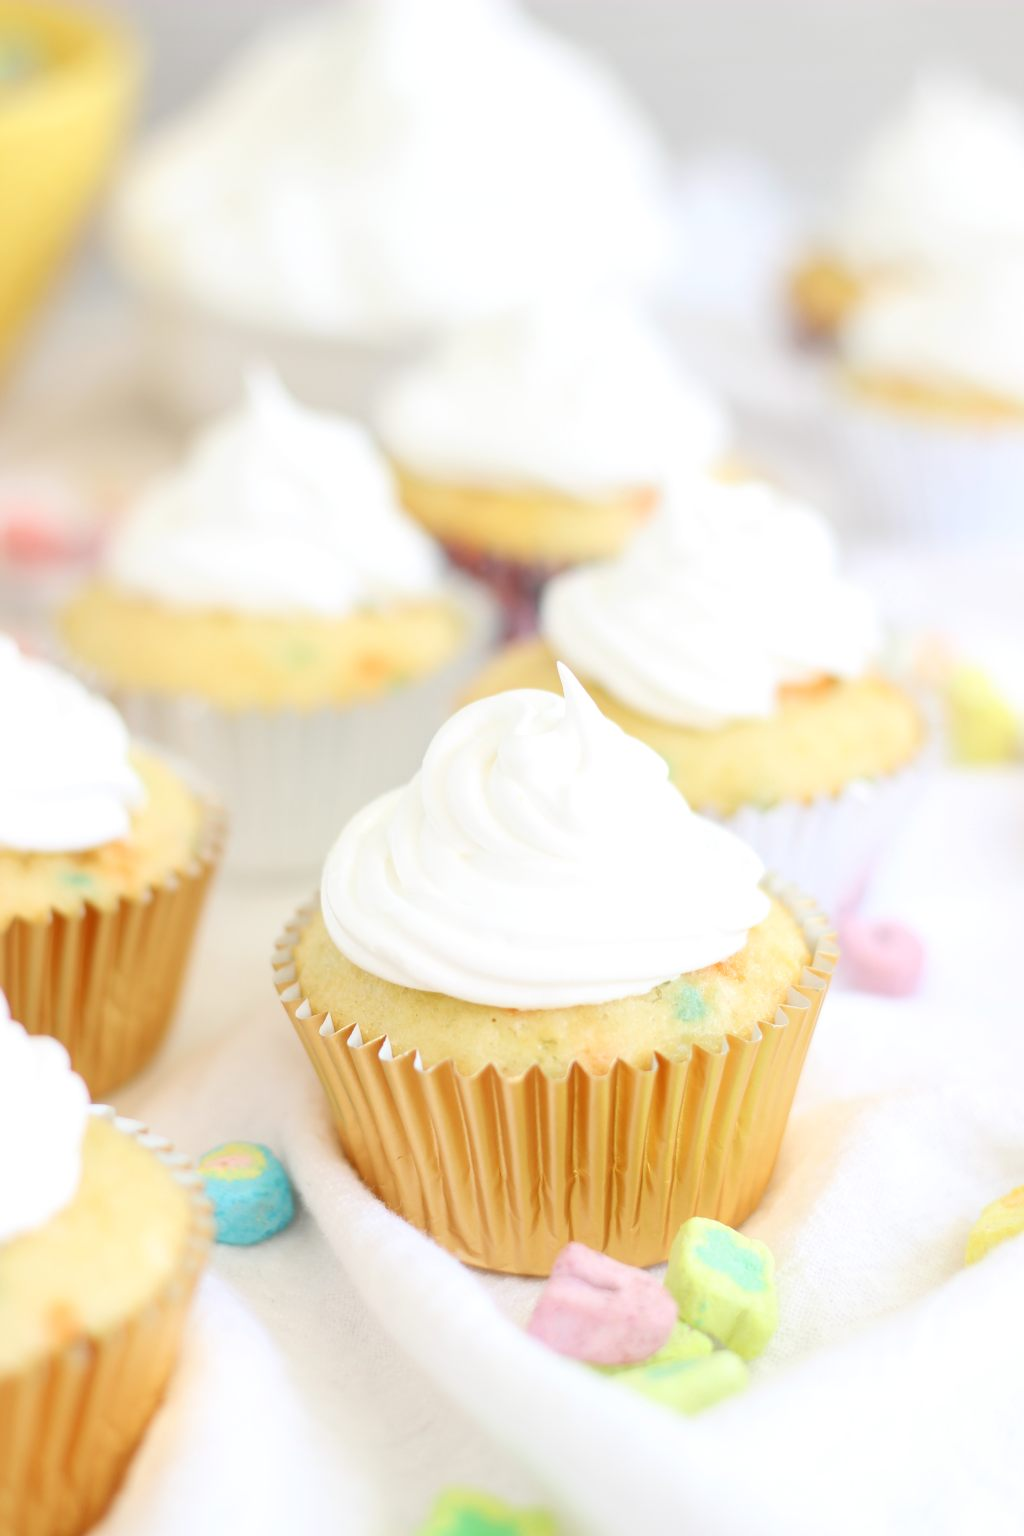 Lucky Charms Cupcakes with Marshmallow Frosting – Dan330